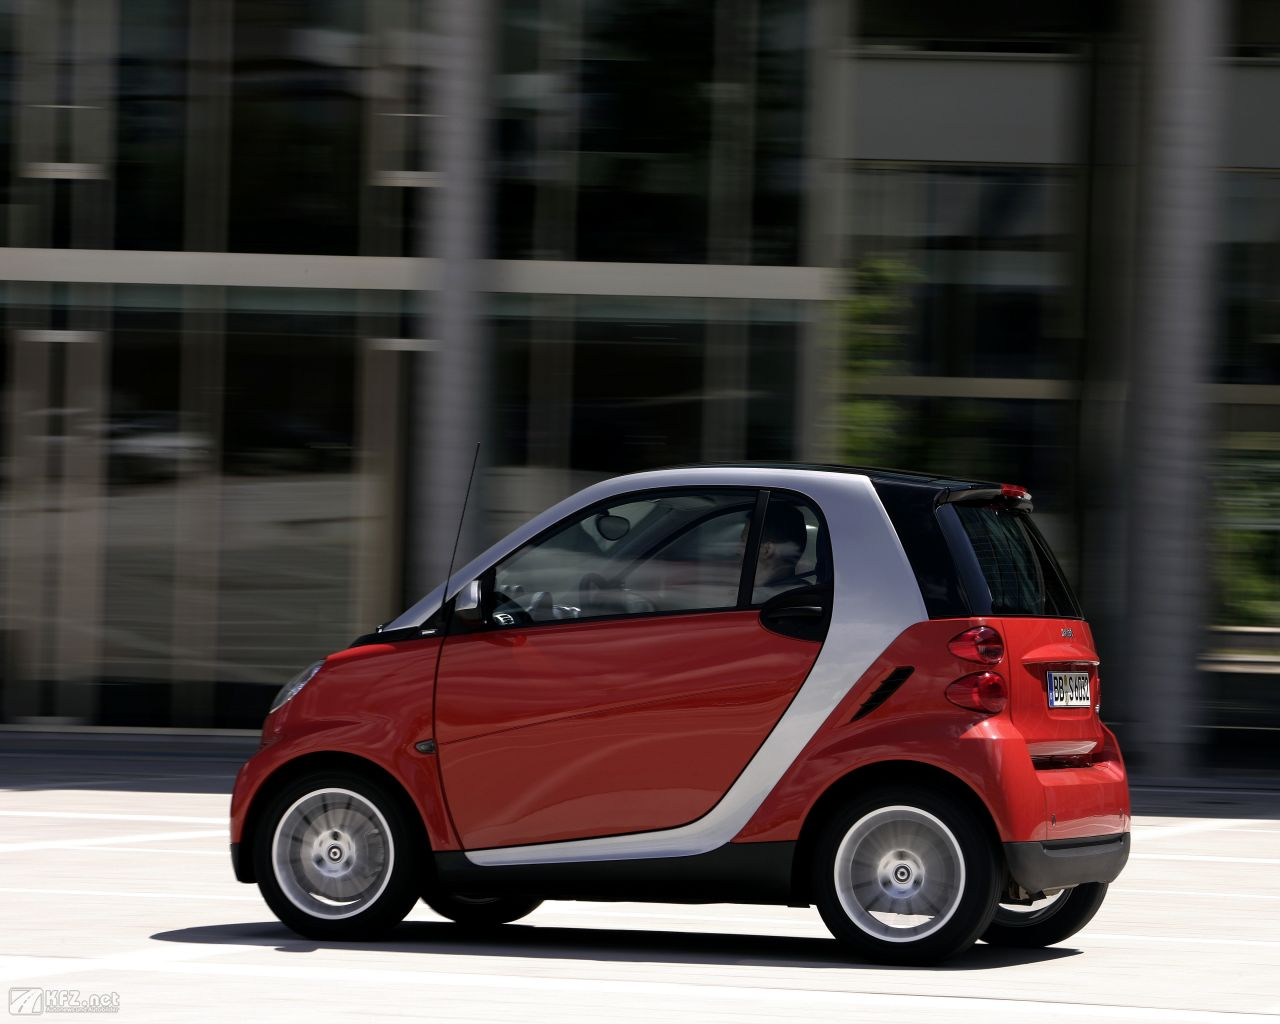 smart-fortwo-1280x1024-8